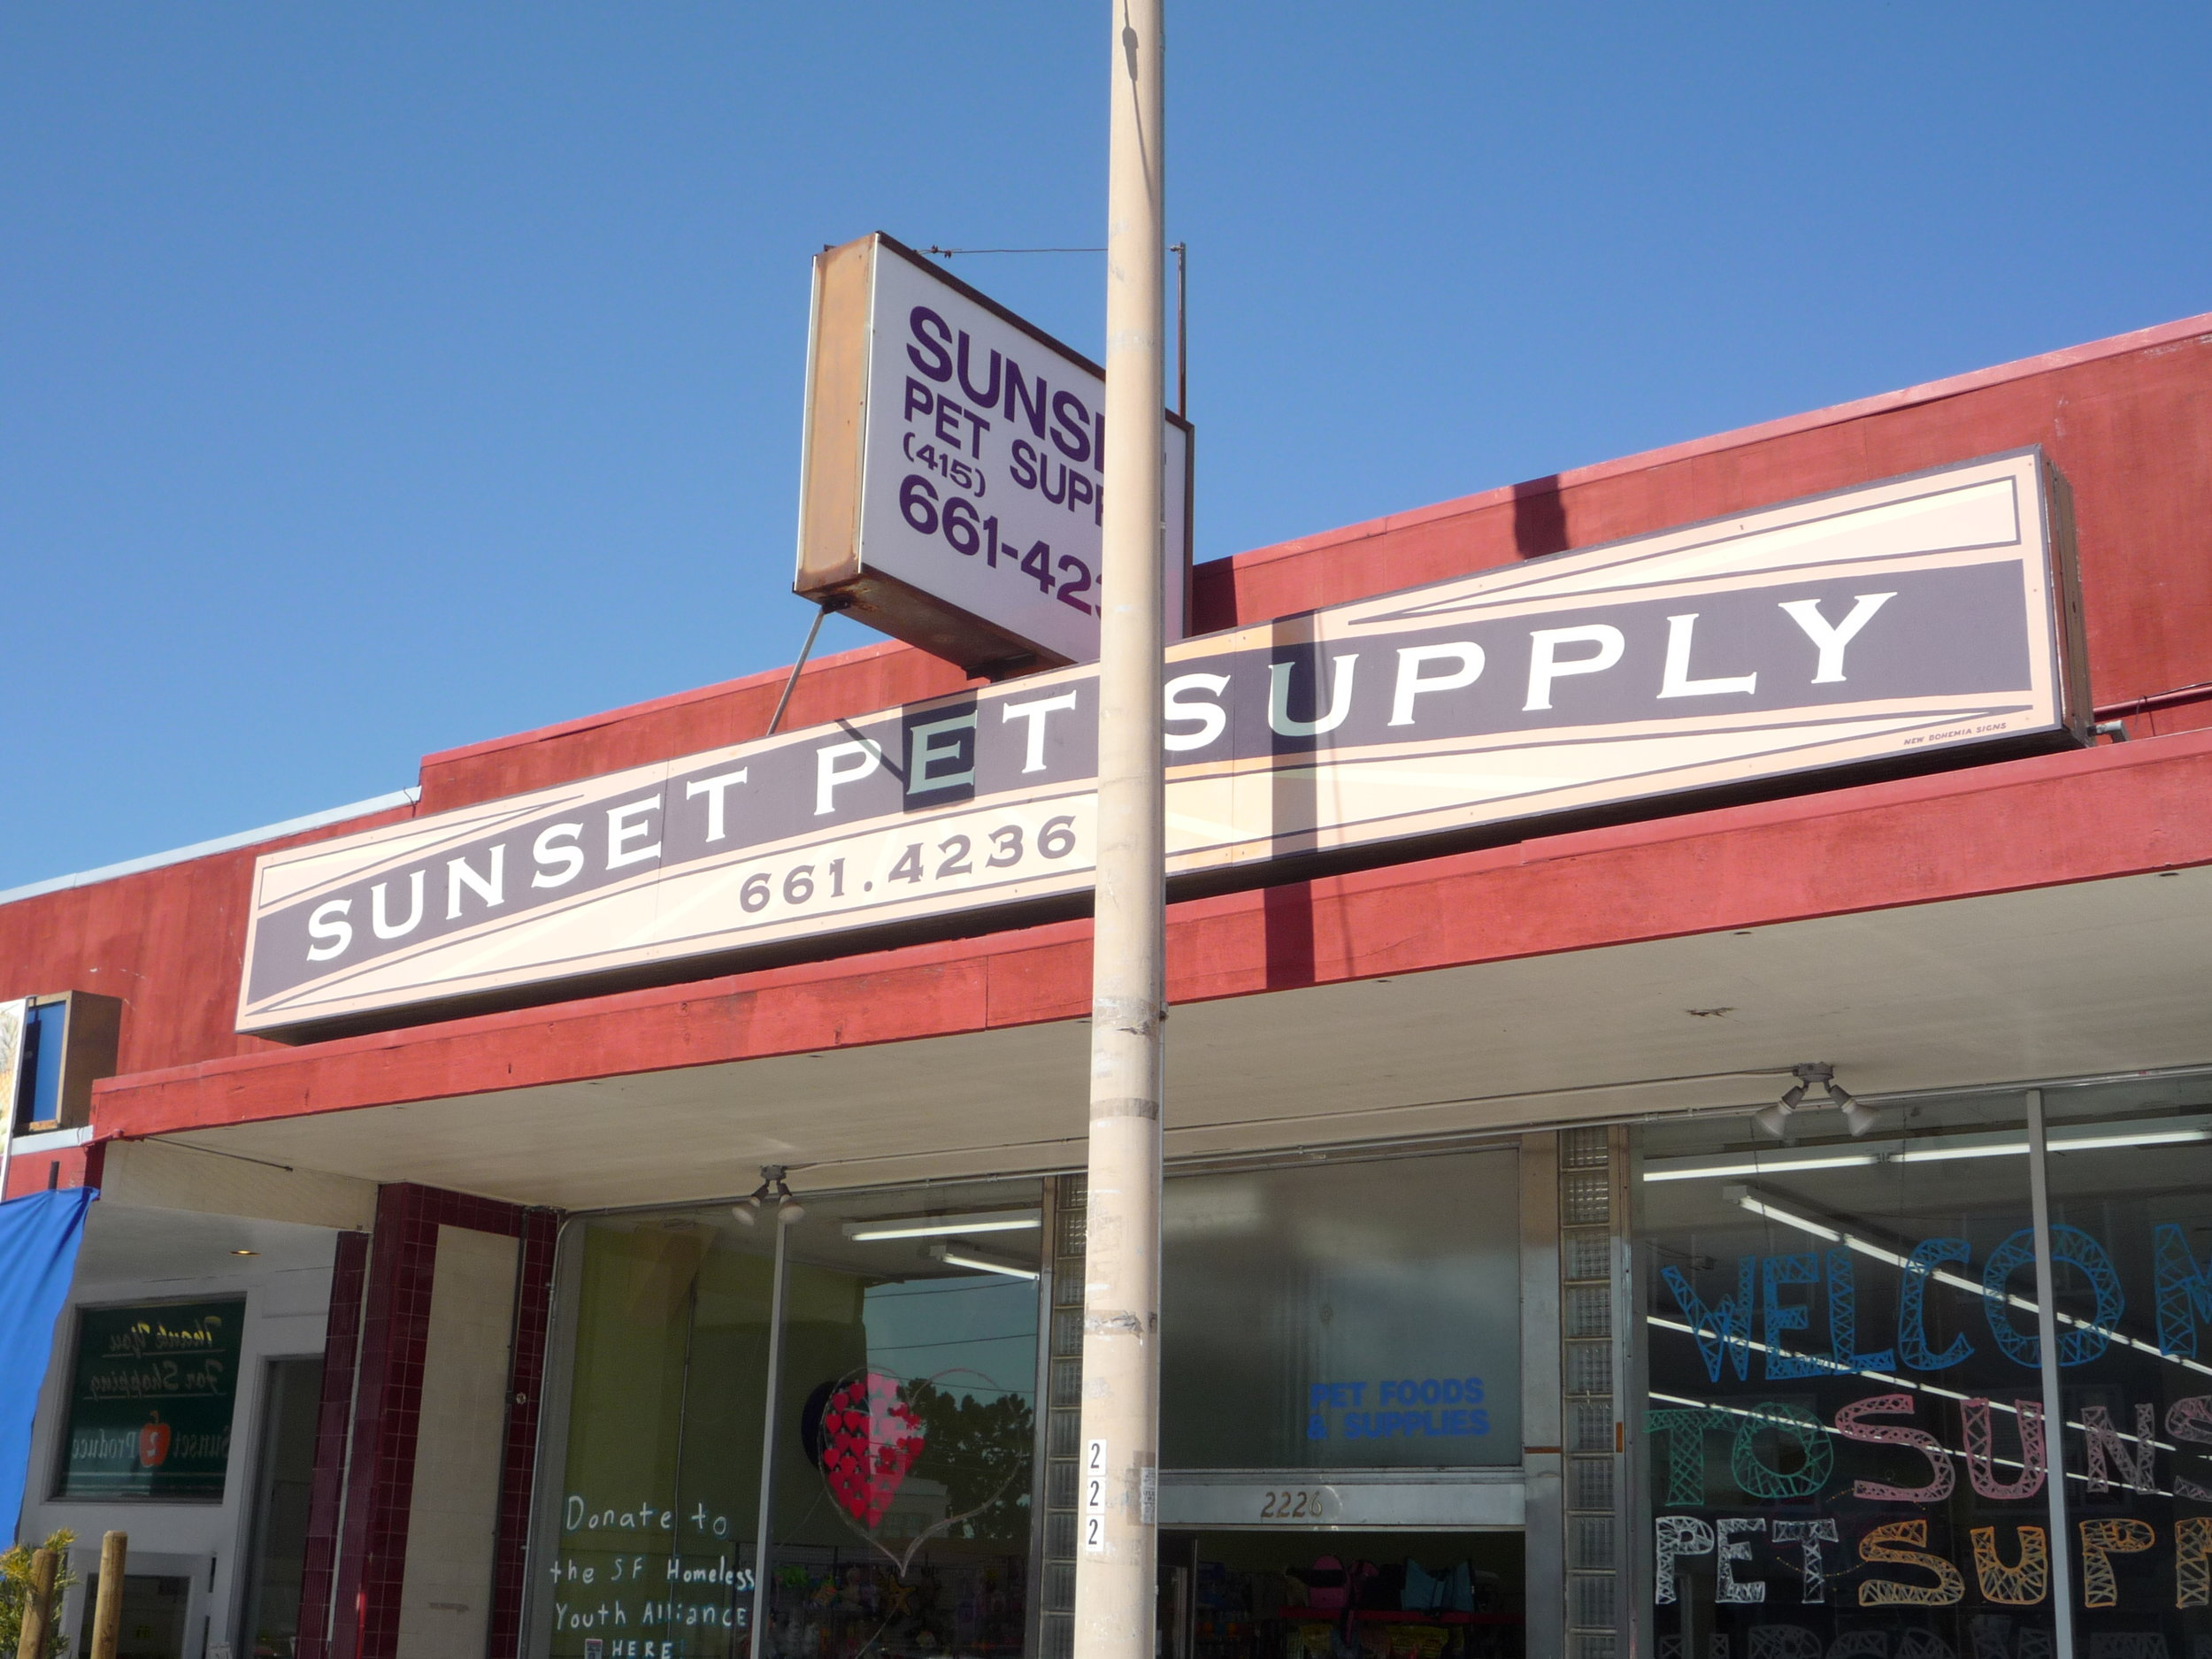 HAND-sunset-pet-supply_4322980797_o.jpg